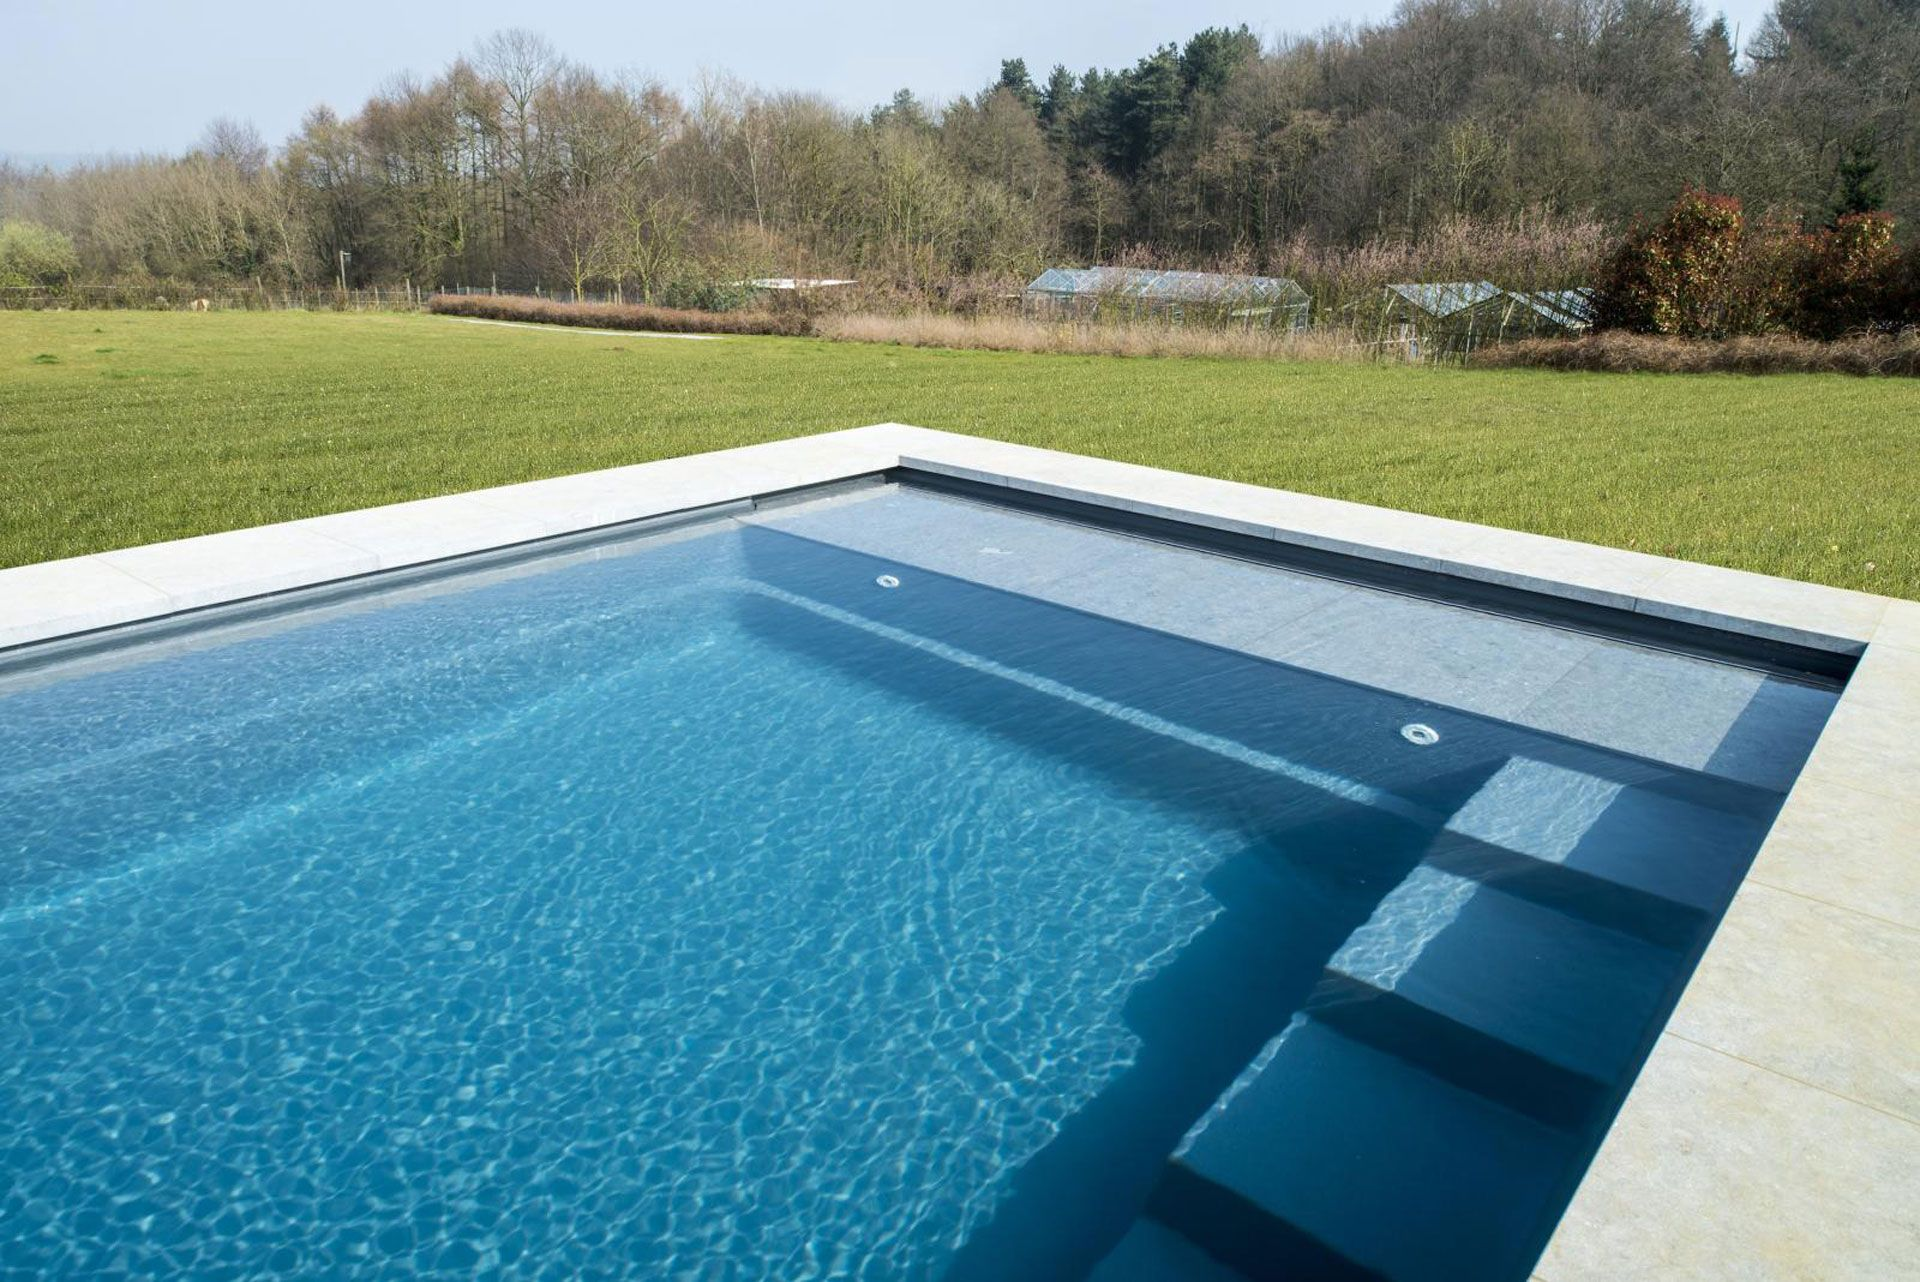 Cube leisure pools europe piscine pinterest piscines for Modele plage piscine